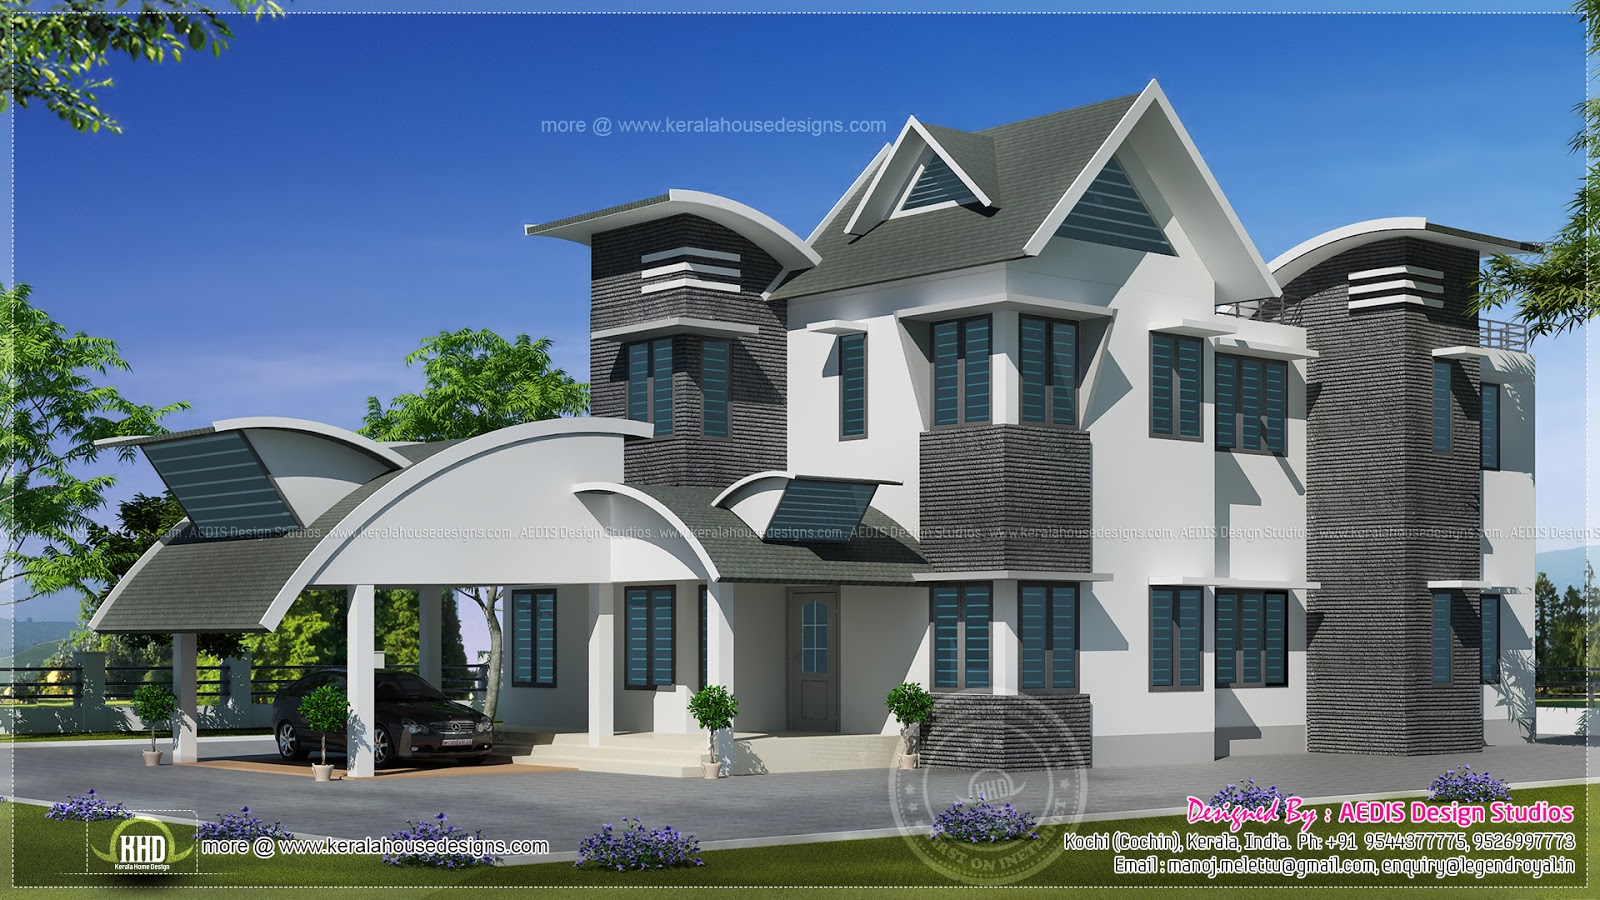 Awesome 90 unique homes designs design inspiration of 28 for Custom house plans designs